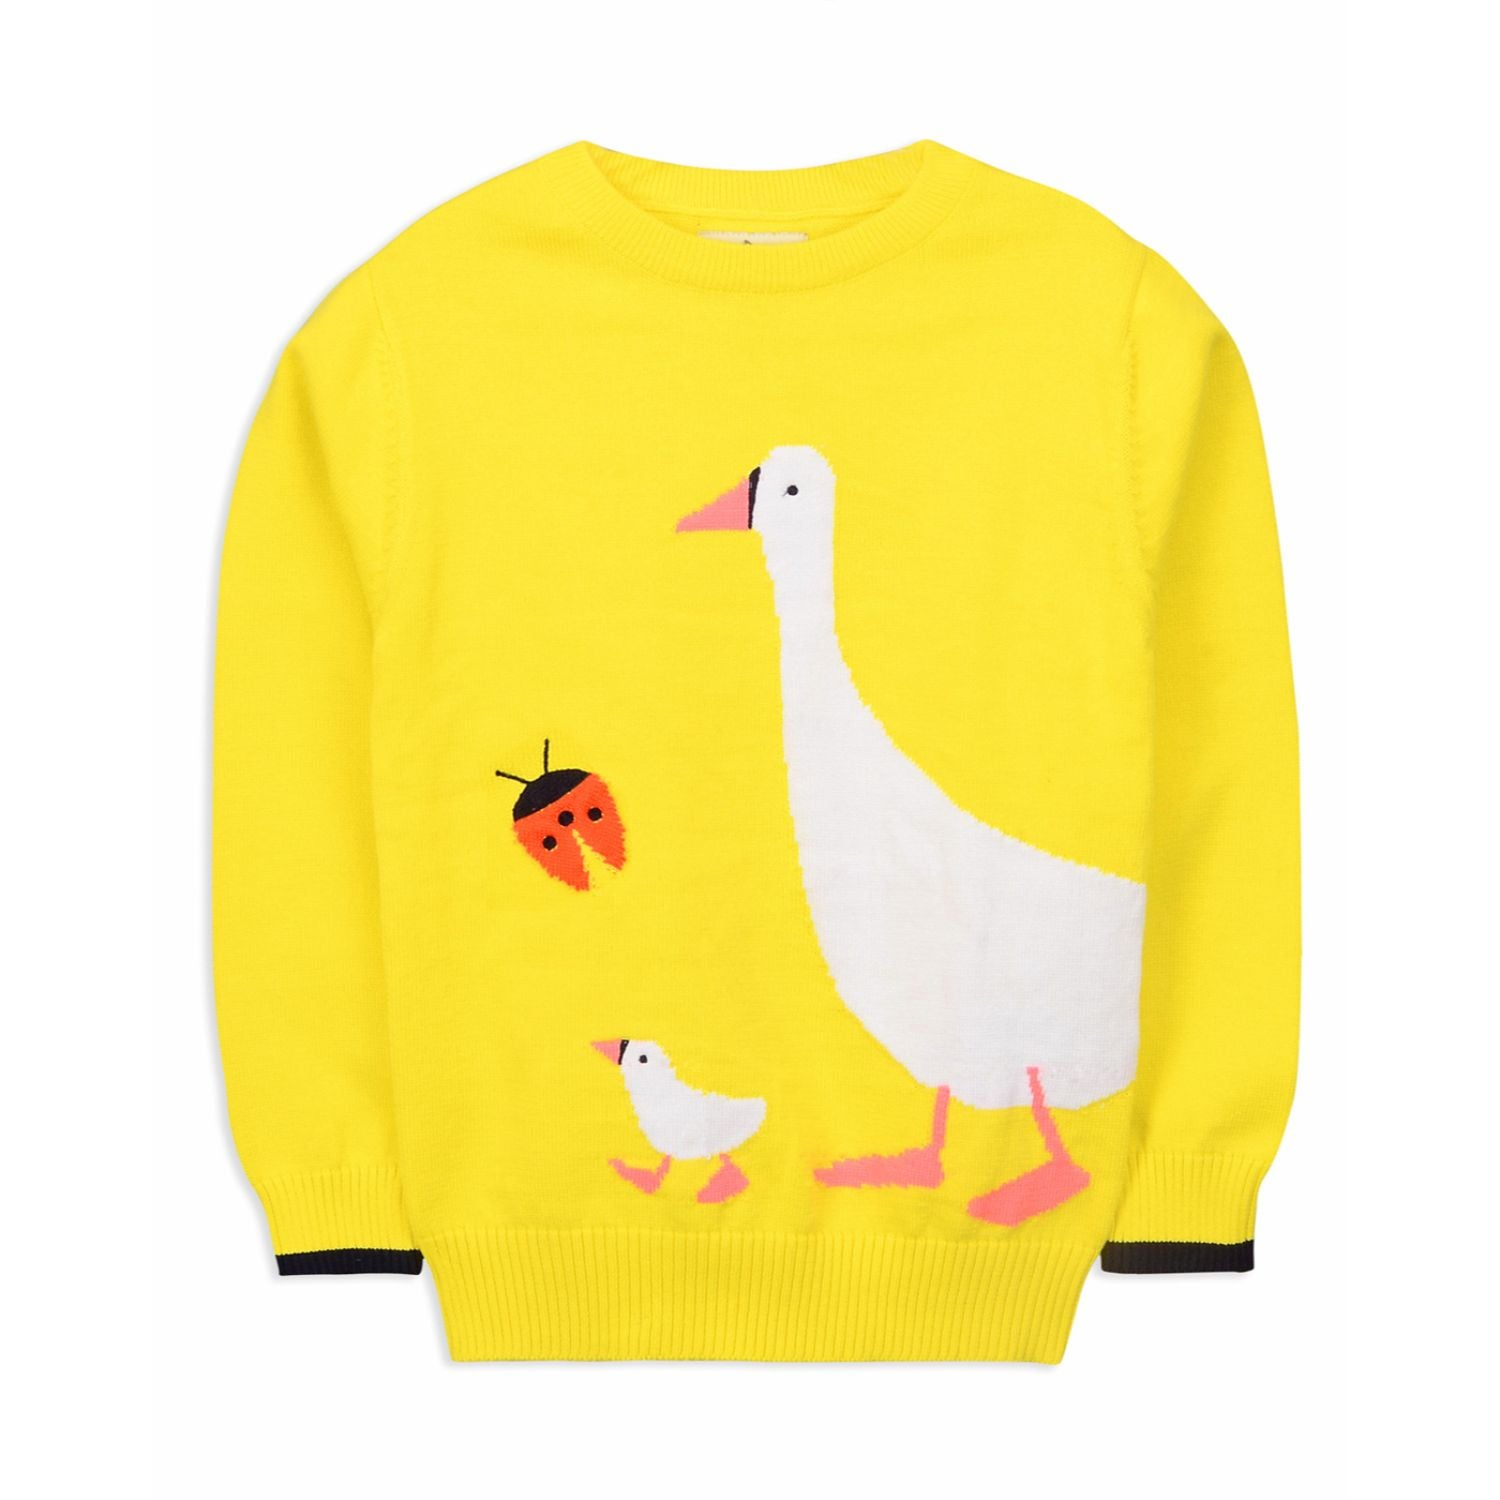 Quack Quack Sweater for Girls